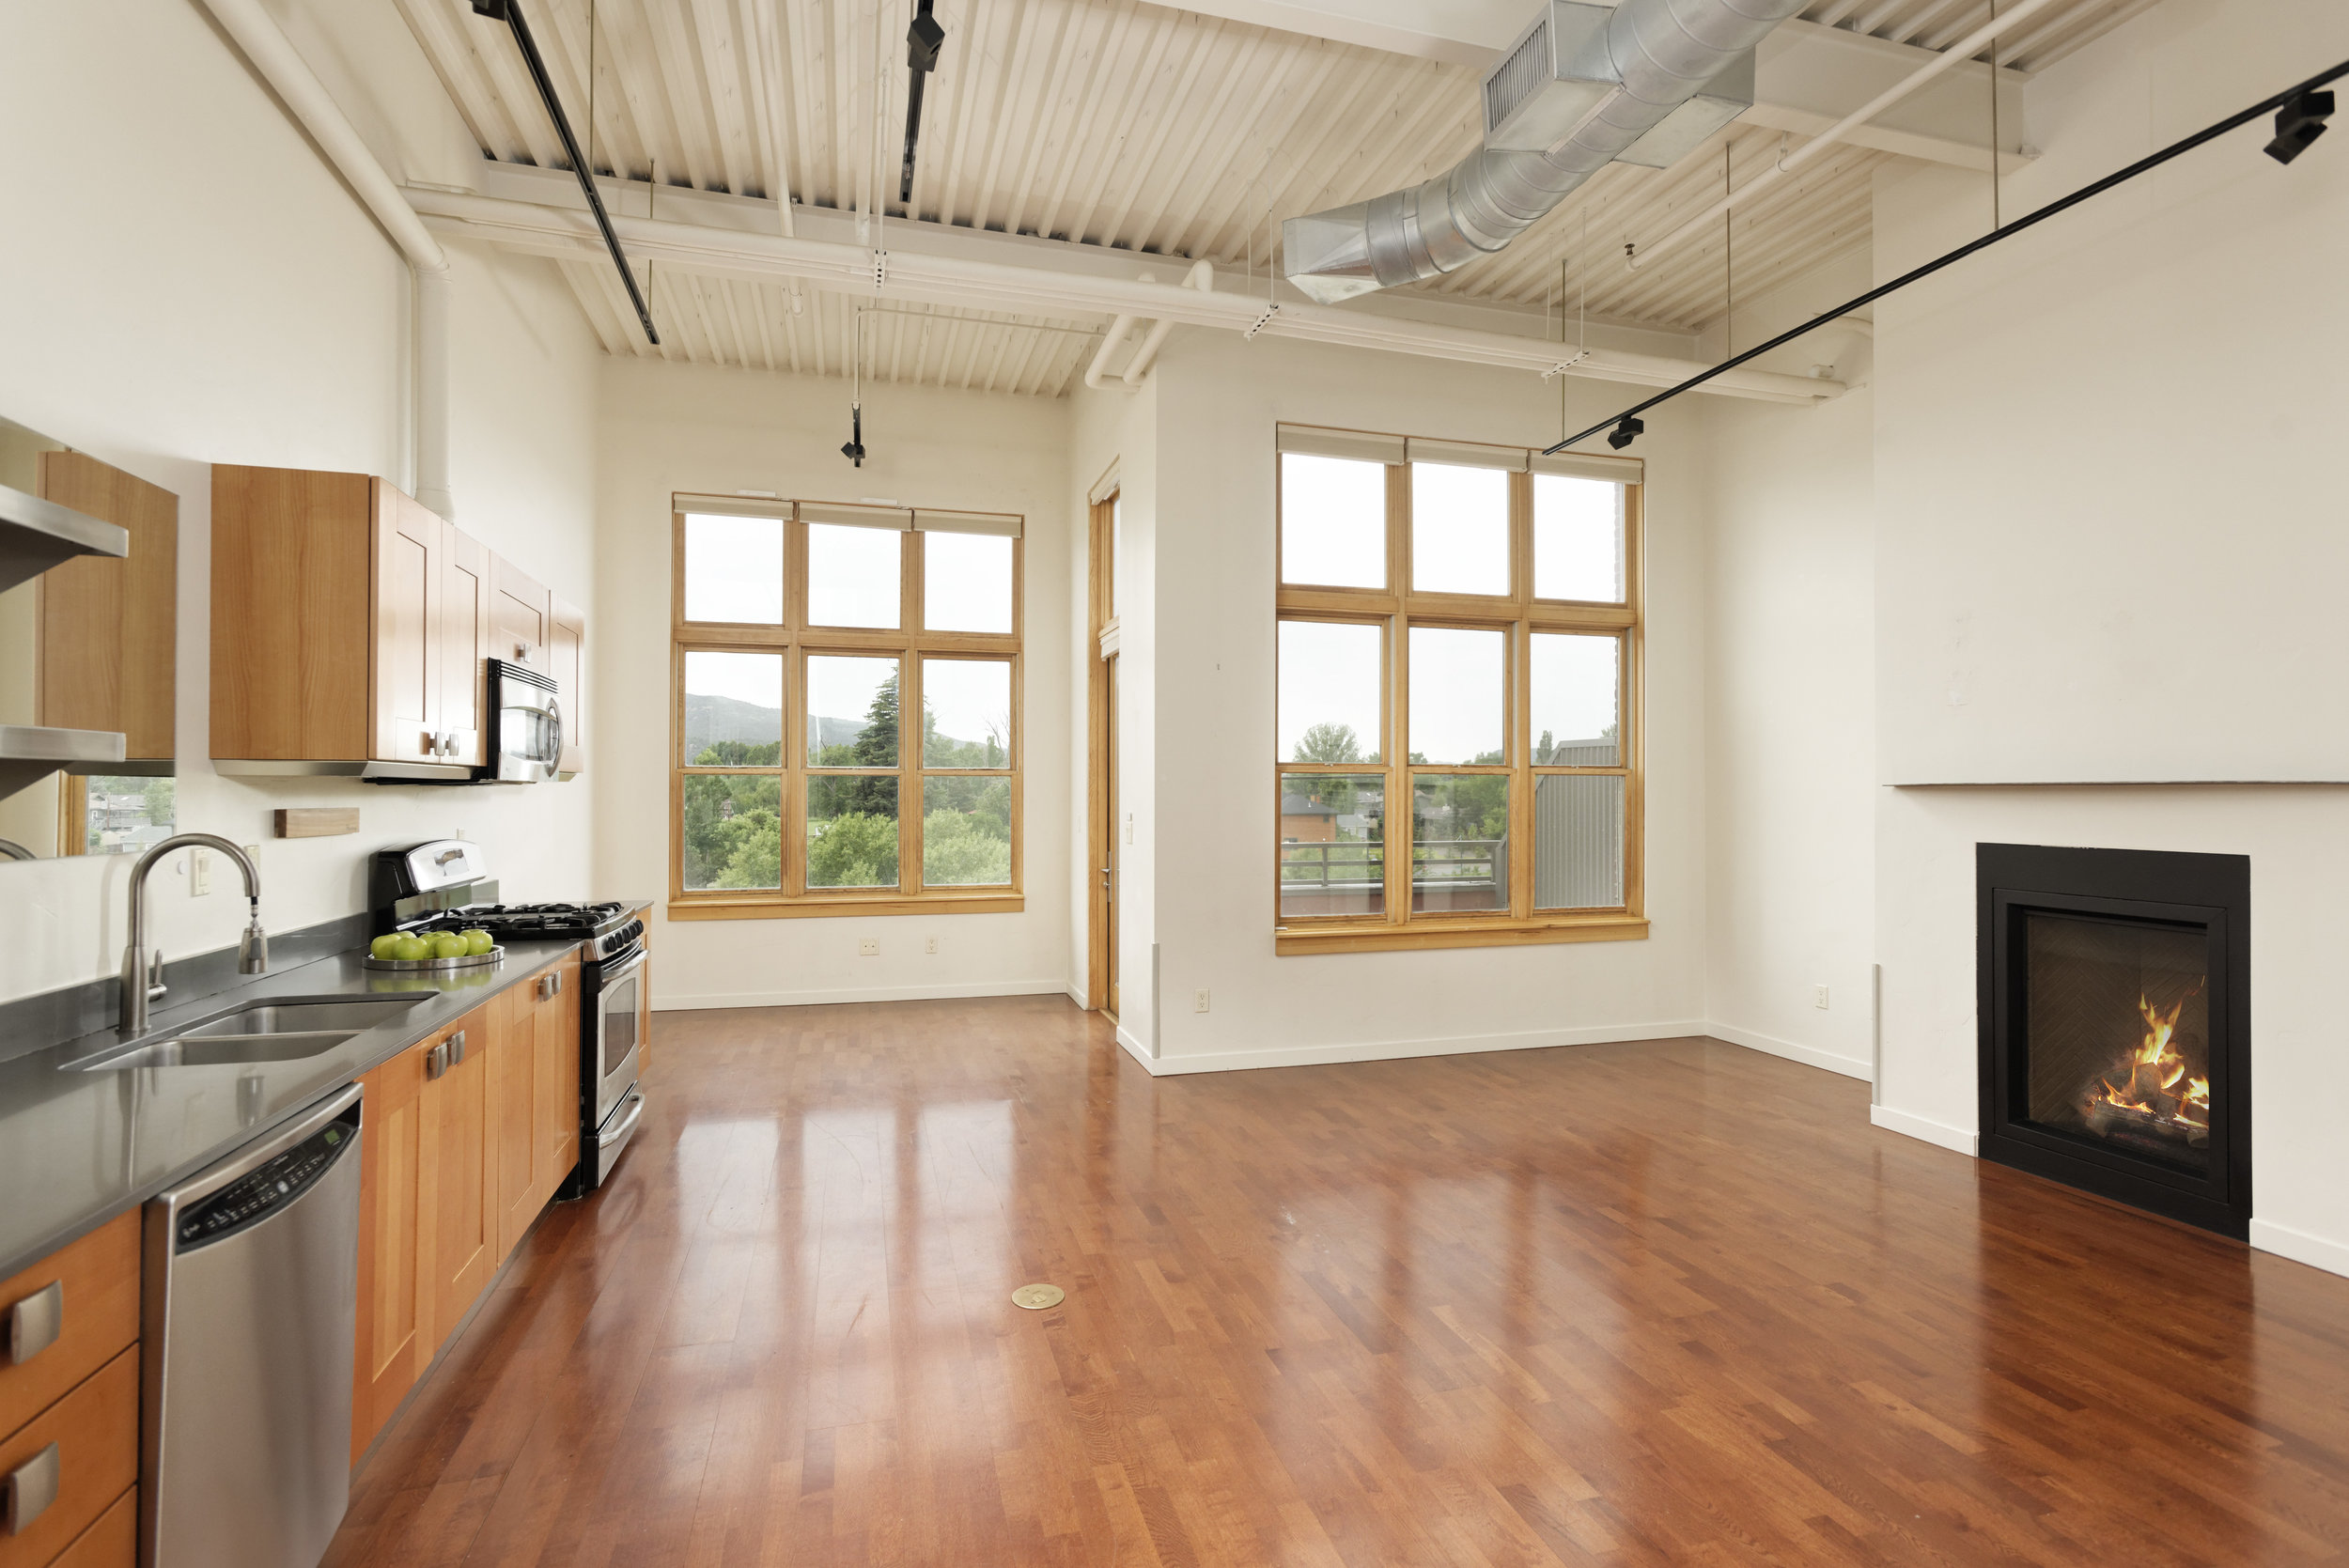 Triangle Park Loft #306 - Two bedroom, two bathroom loft located in the heart of Willits. Great mid-valley location. Close to shops, restaurants, grocery stores, biking trails, and more!